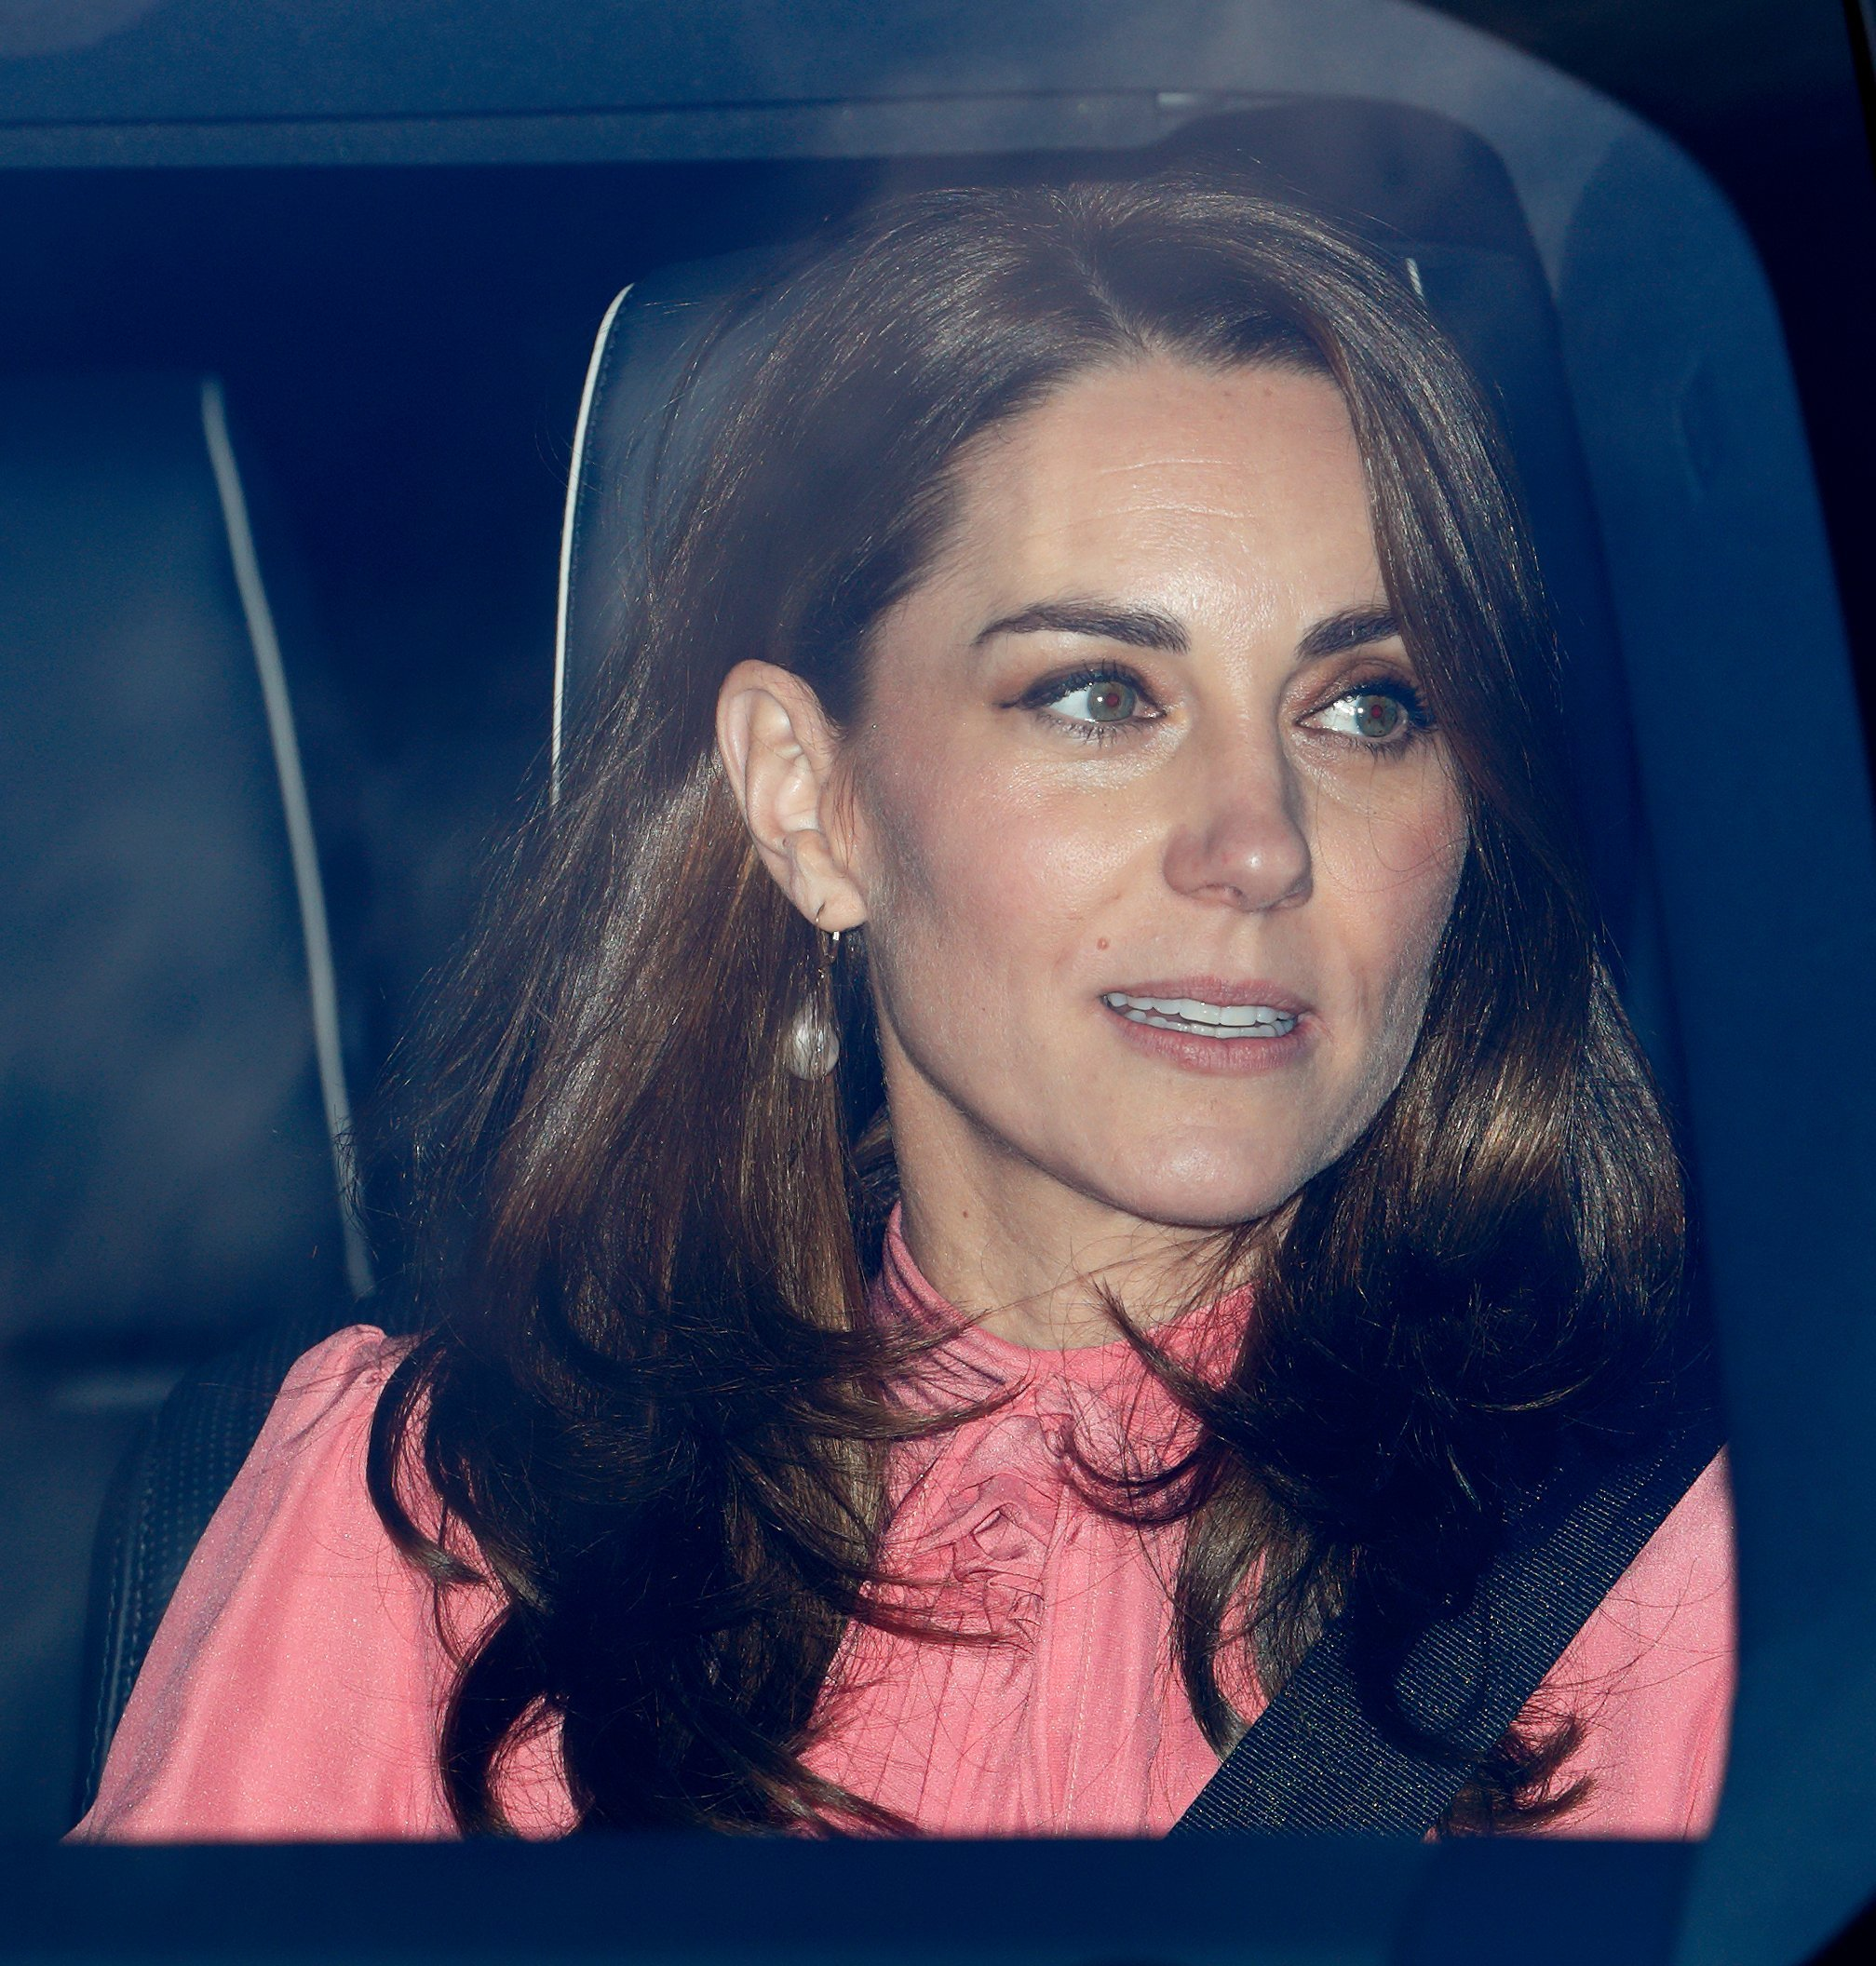 Kate Middleton, Duchess of Cambridge, attends a Christmas Lunch at Buckingham Palace on December 19, 2018 | Photo: Getty Images